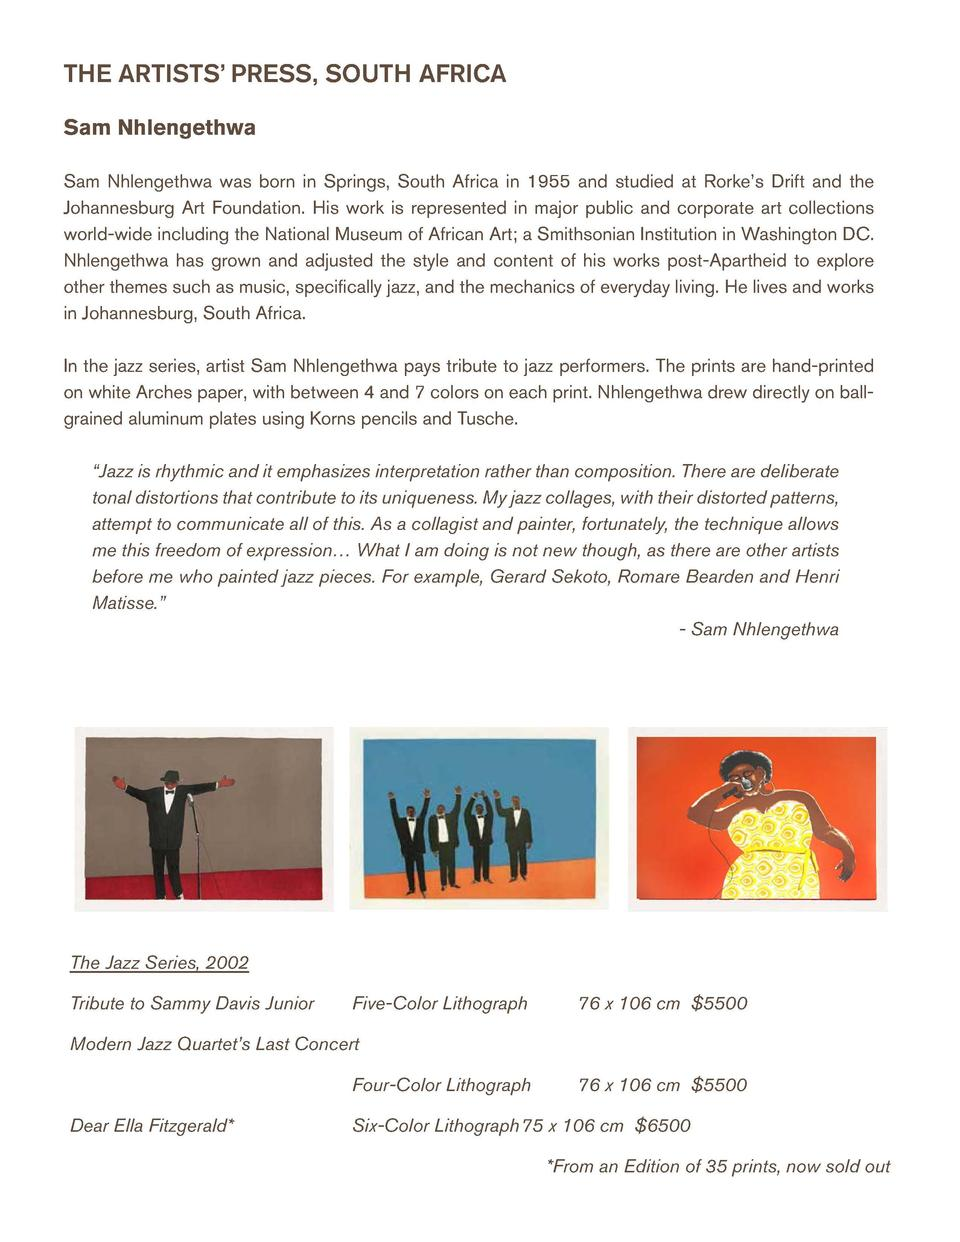 THE ARTISTS    PRESS, SOUTH AFRICA  THE ARTISTS    PRESS, SOUTH AFRICA  Sam Nhlengethwa  Anton Kannemeyer  Sam Nhlengethwa...